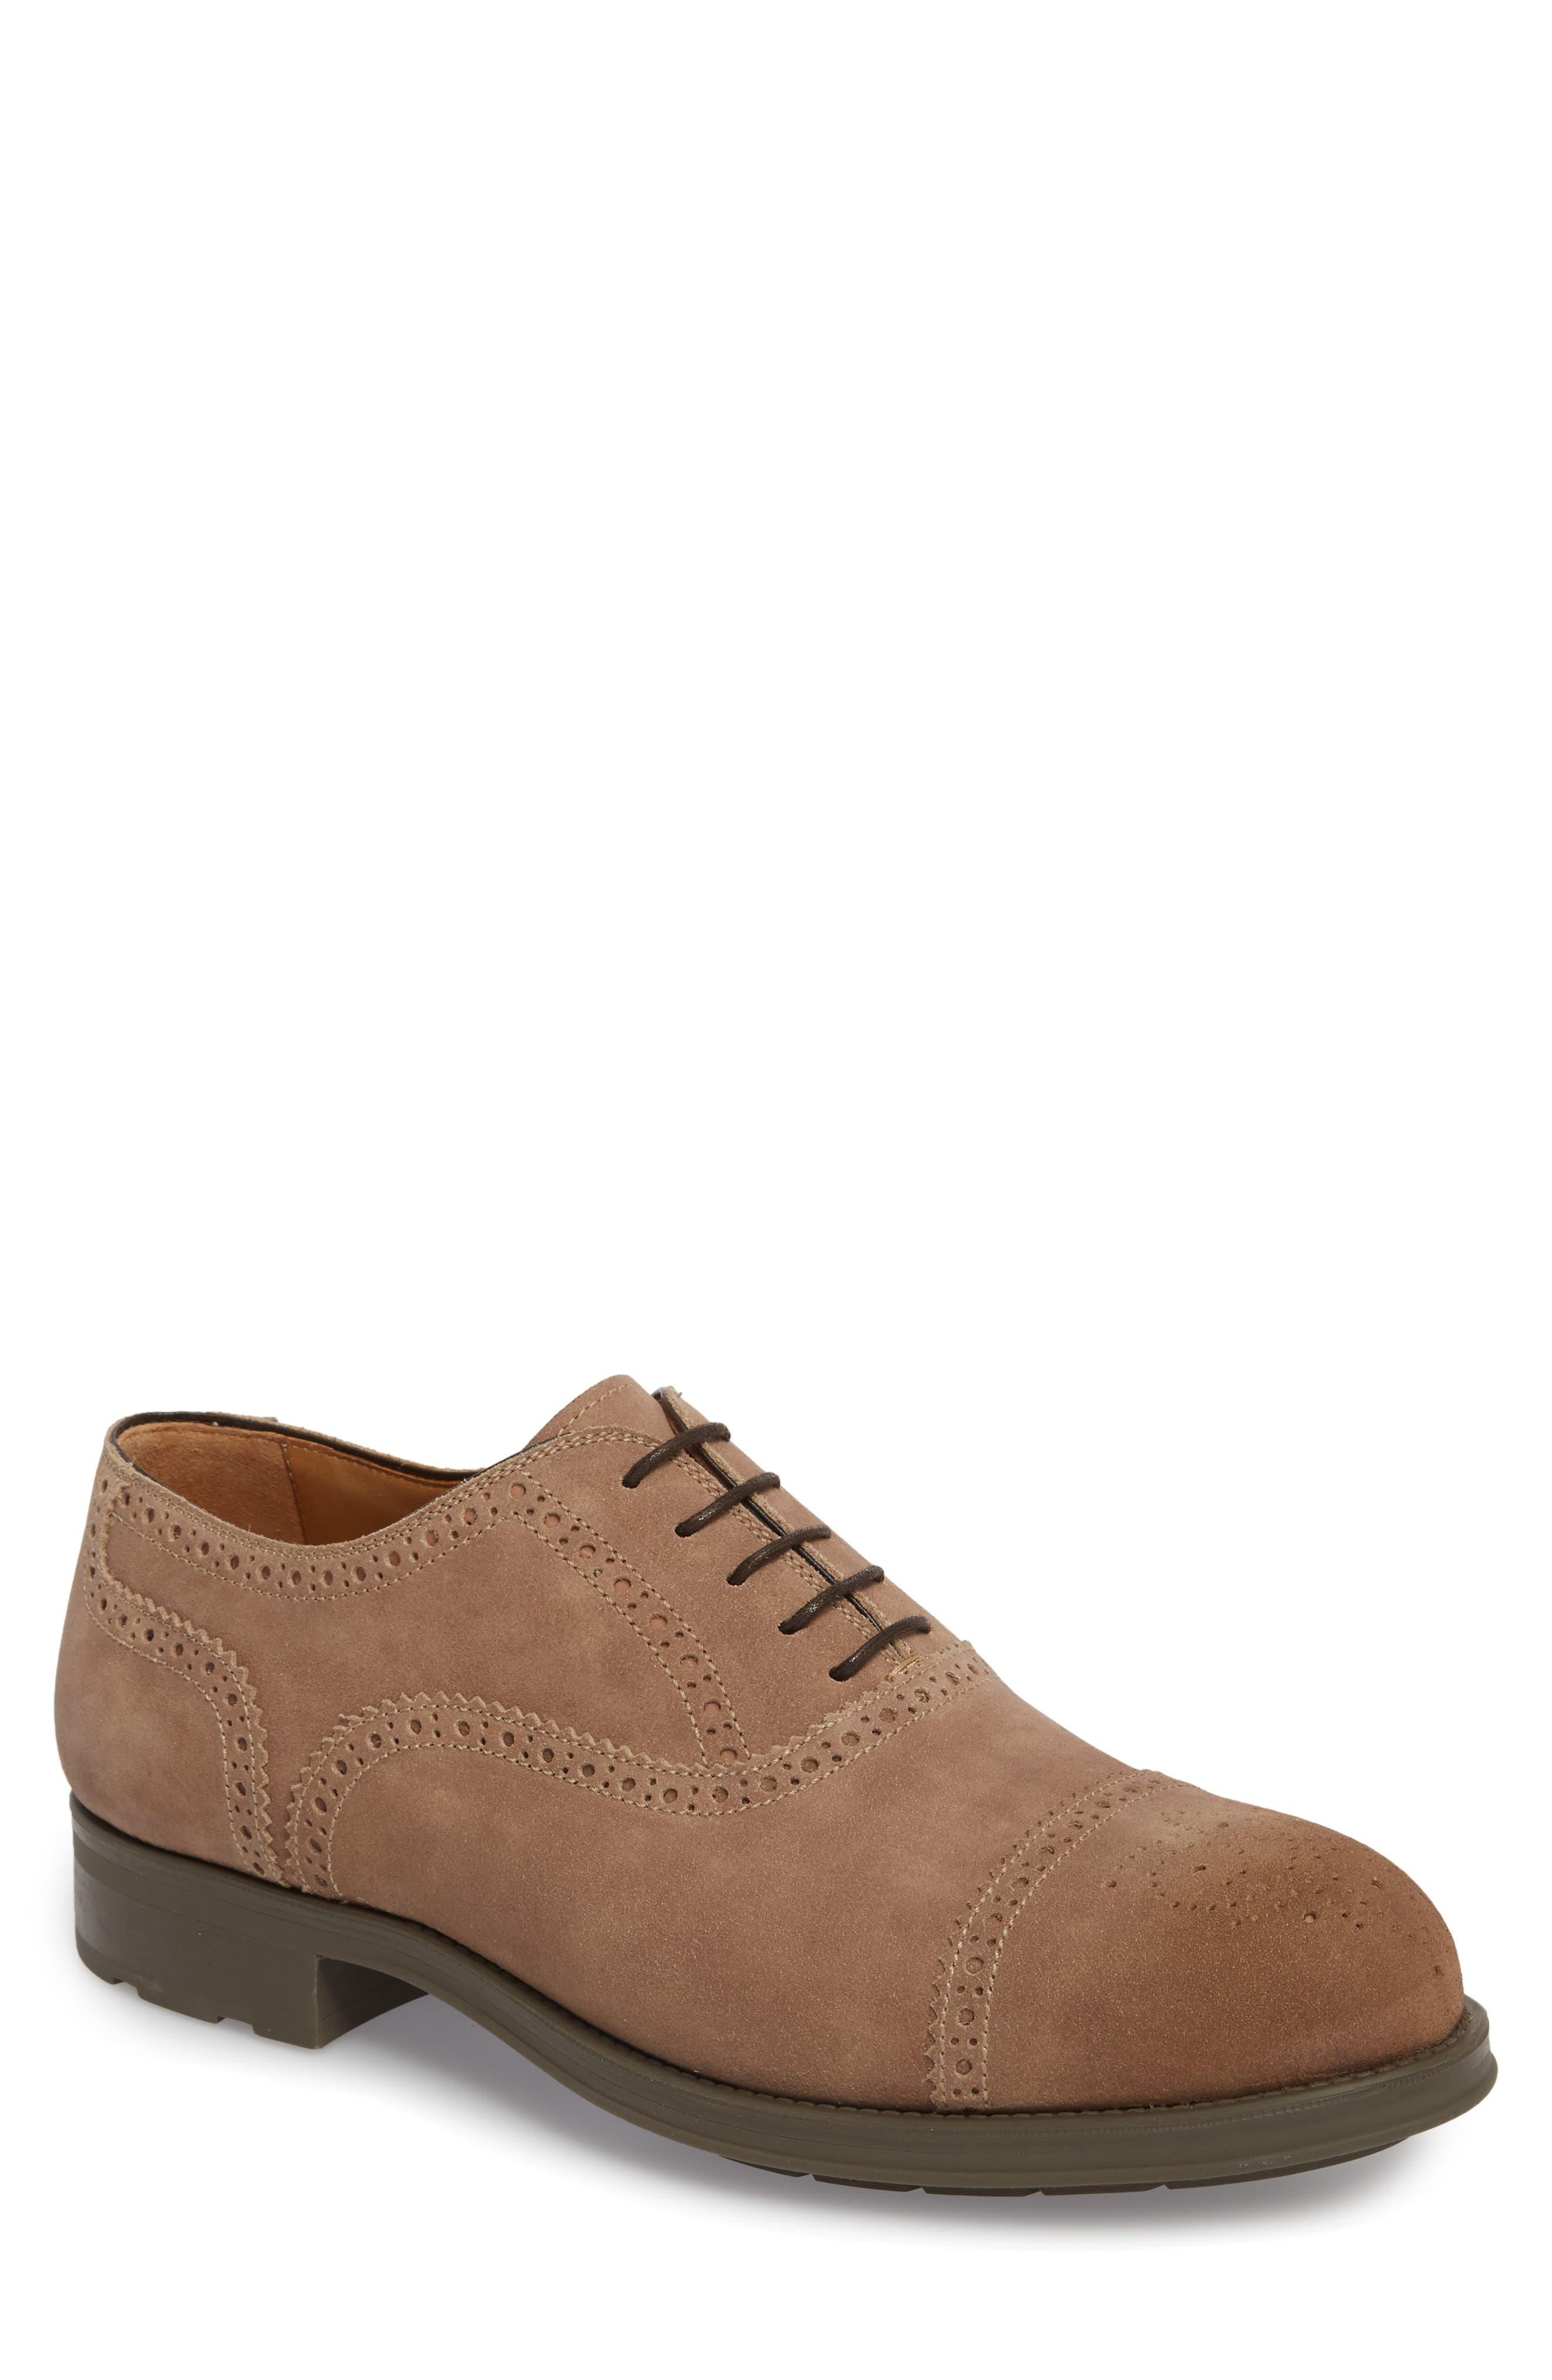 Magnanni Winslo Cap Toe Oxford (Men)